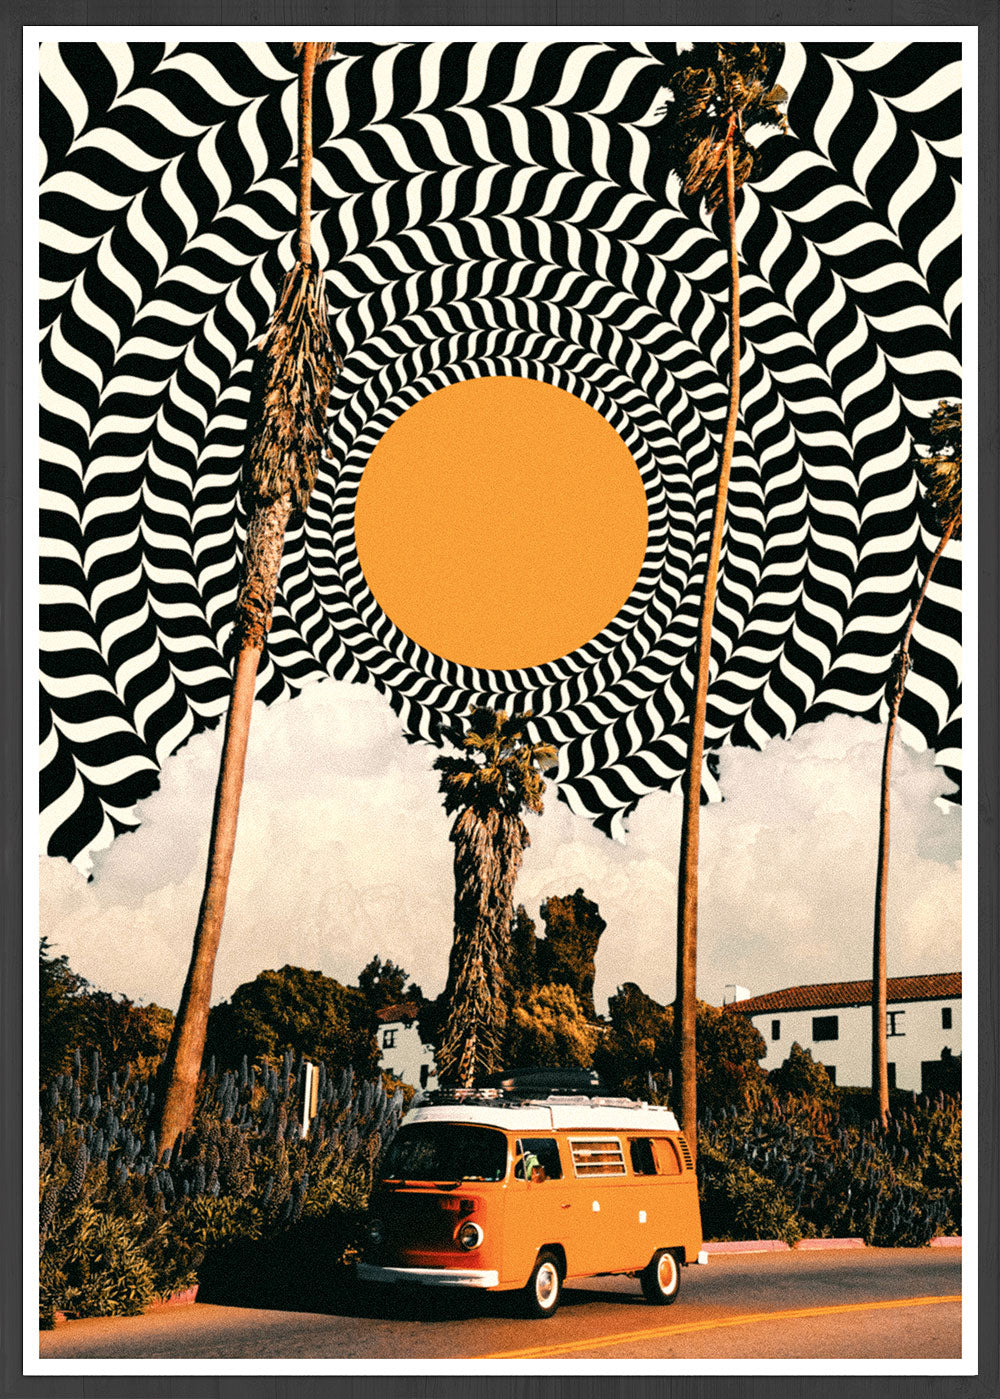 Where we going? Collage Art Poster